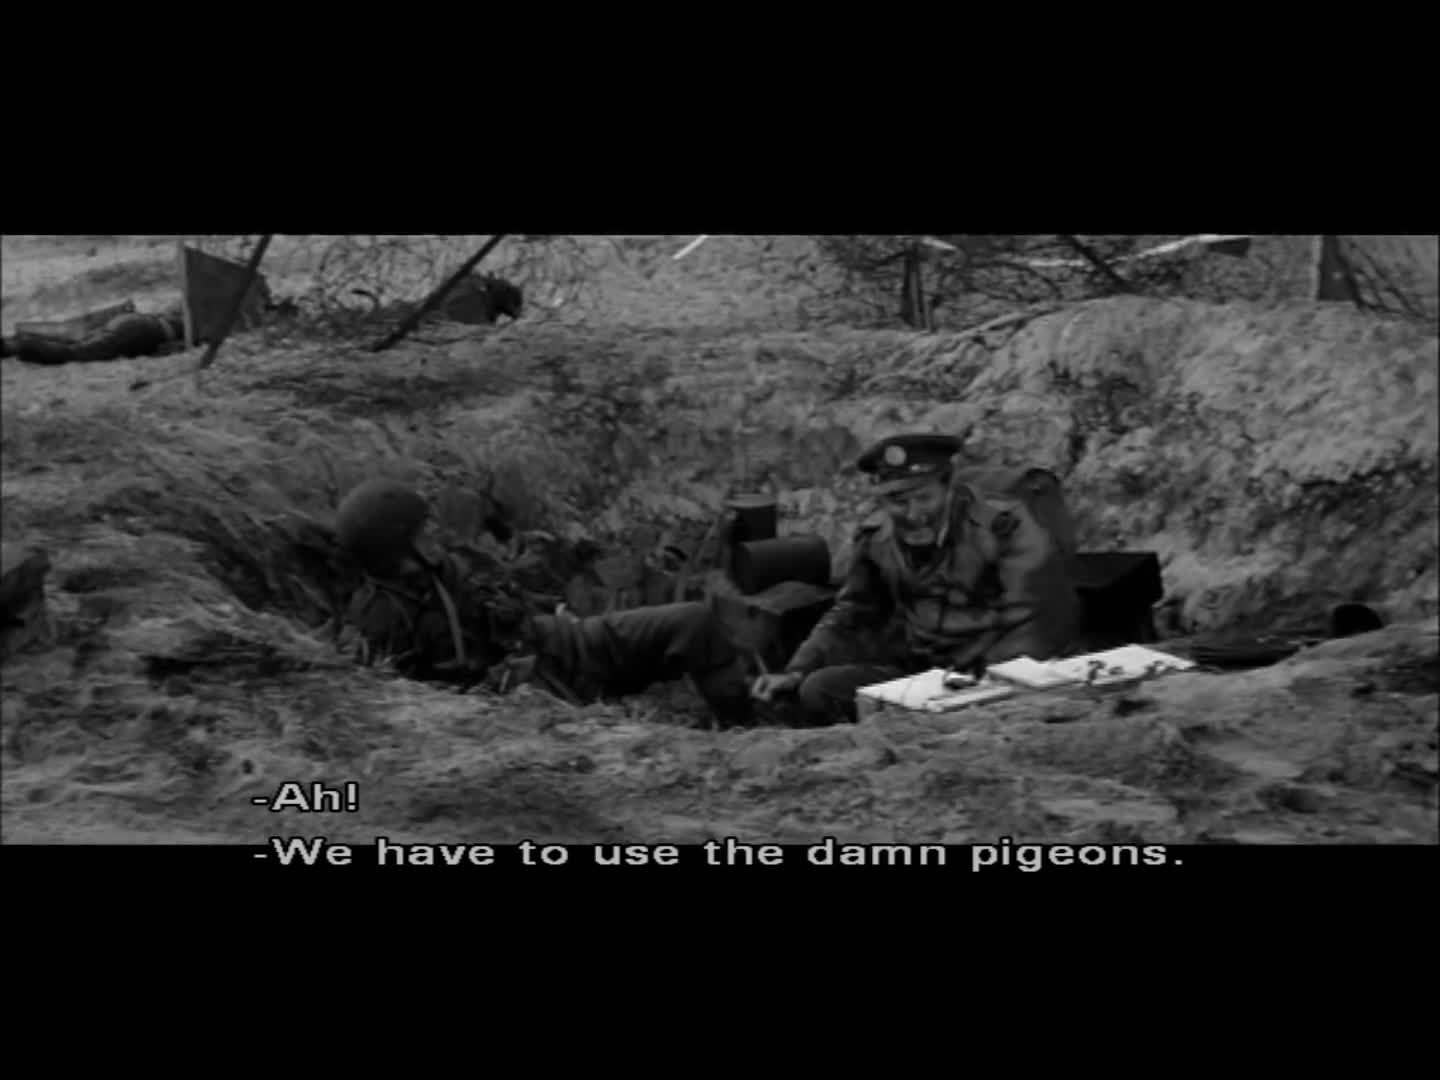 comedy, day, funny, jim white, longest, normandy, part 1, the, ww2, The Longest Day GIFs